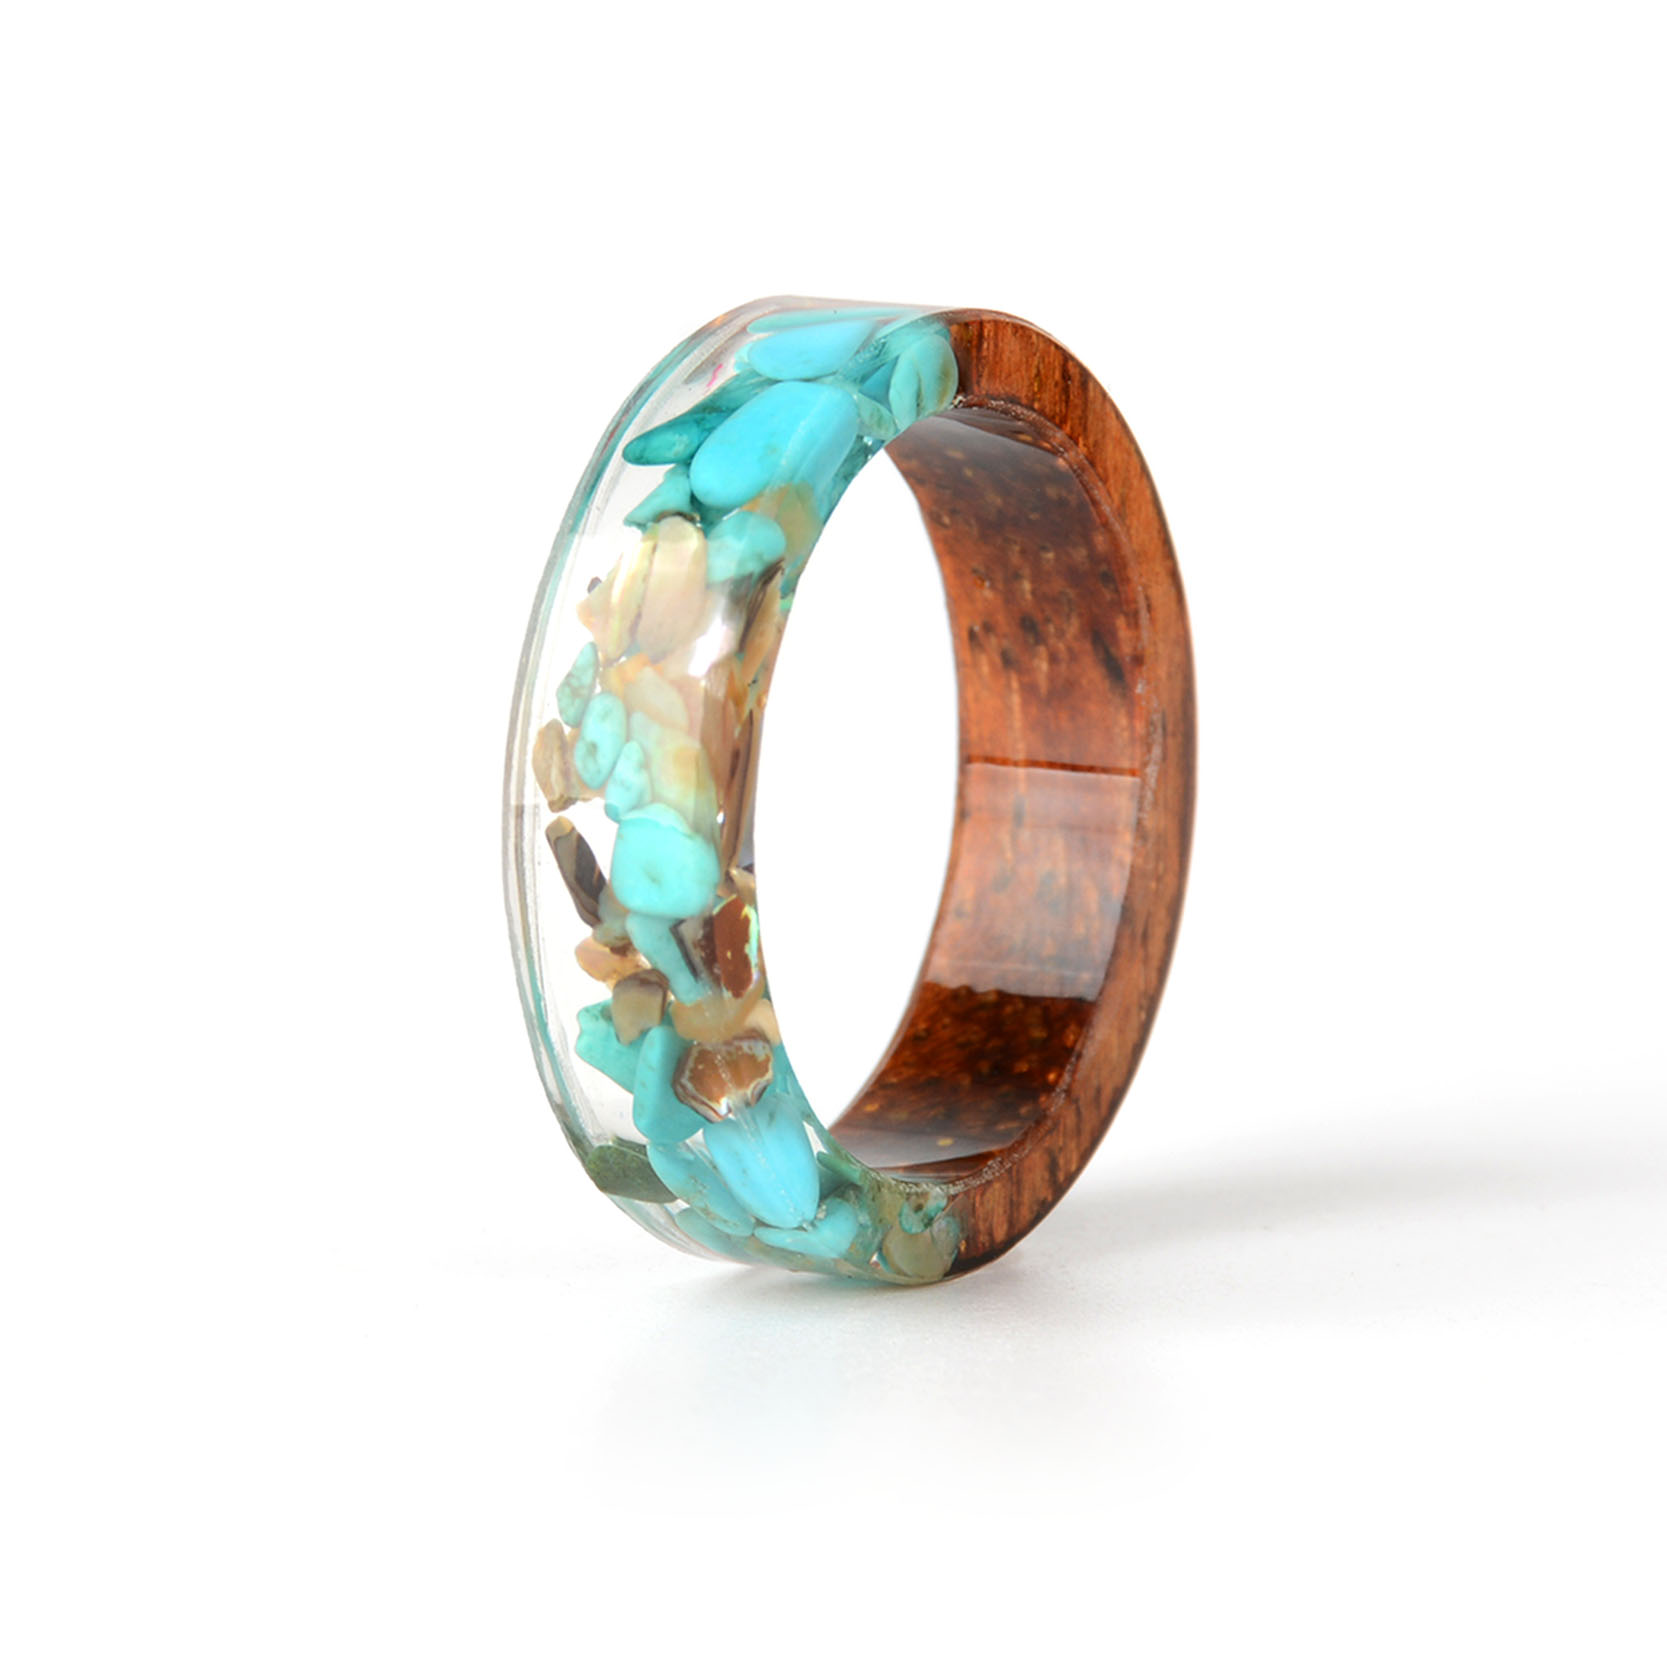 HTB1NZVjdi6guuRkSnb4q6zu4XXa3 - Hot Sale Handmade Wood Resin Ring Dried Flowers Plants Inside Jewelry Resin Ring Transparent Anniversary Ring for Women